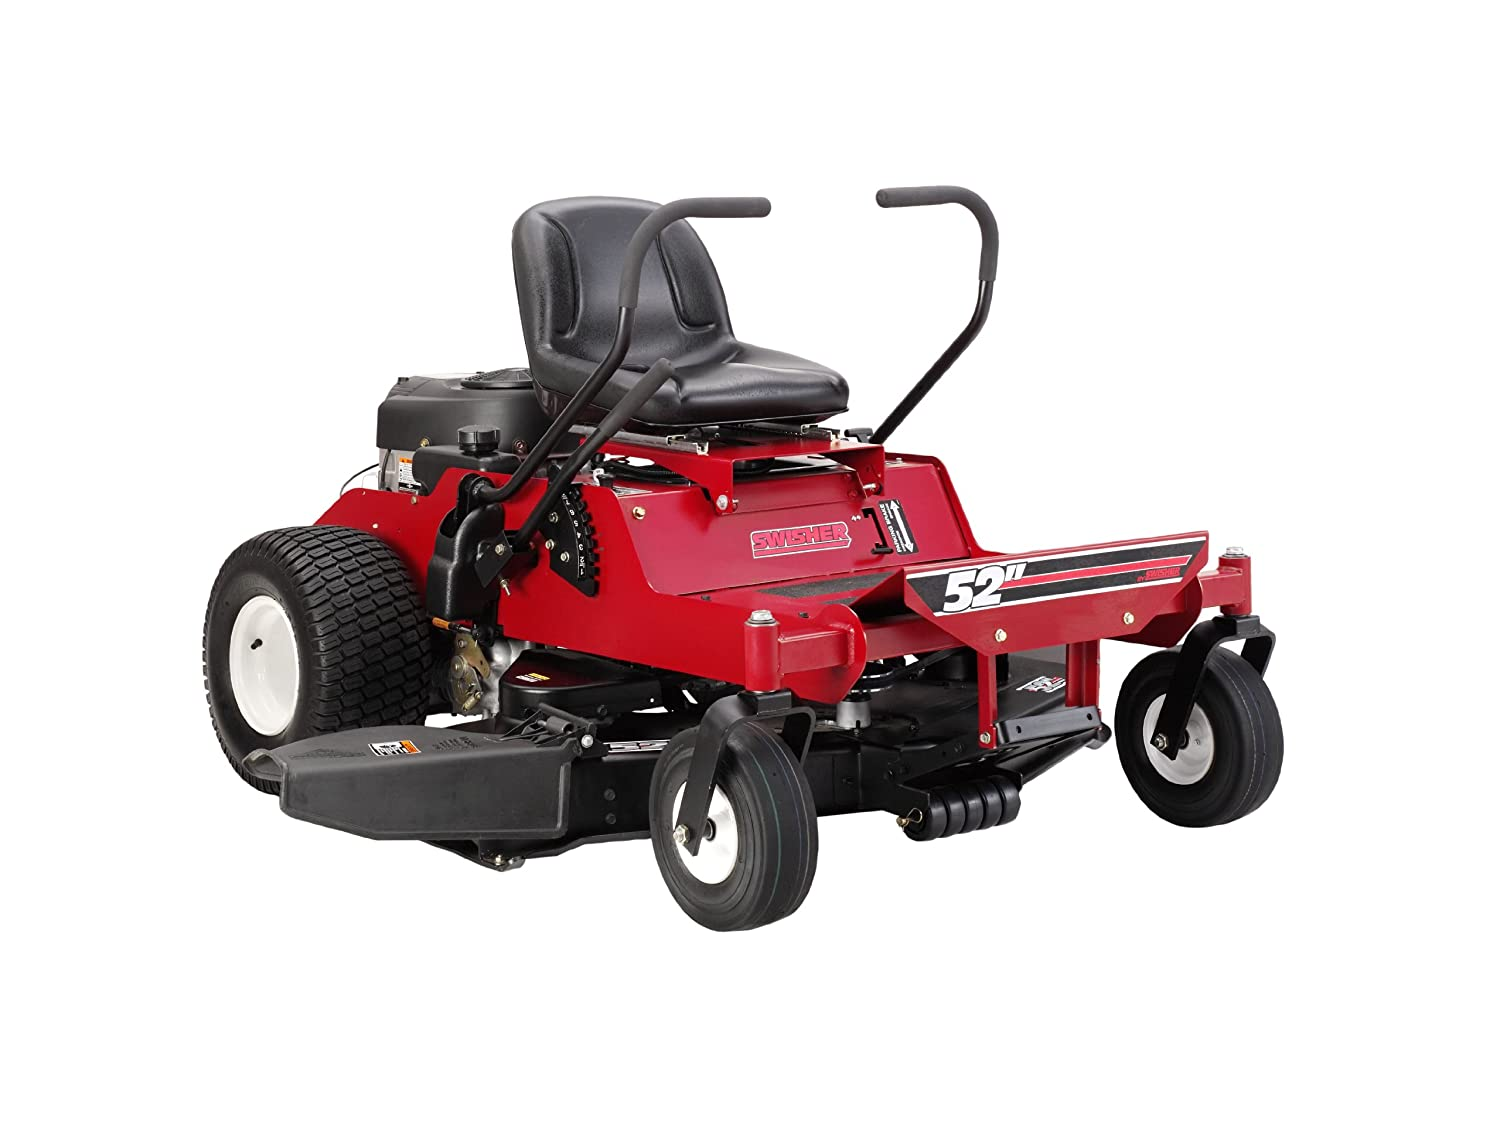 Power King Mowing Deck Diagram Ranch Riding Mower Wiring Swisher A Inch Zero Turn Garden Outdoor 1500x1125